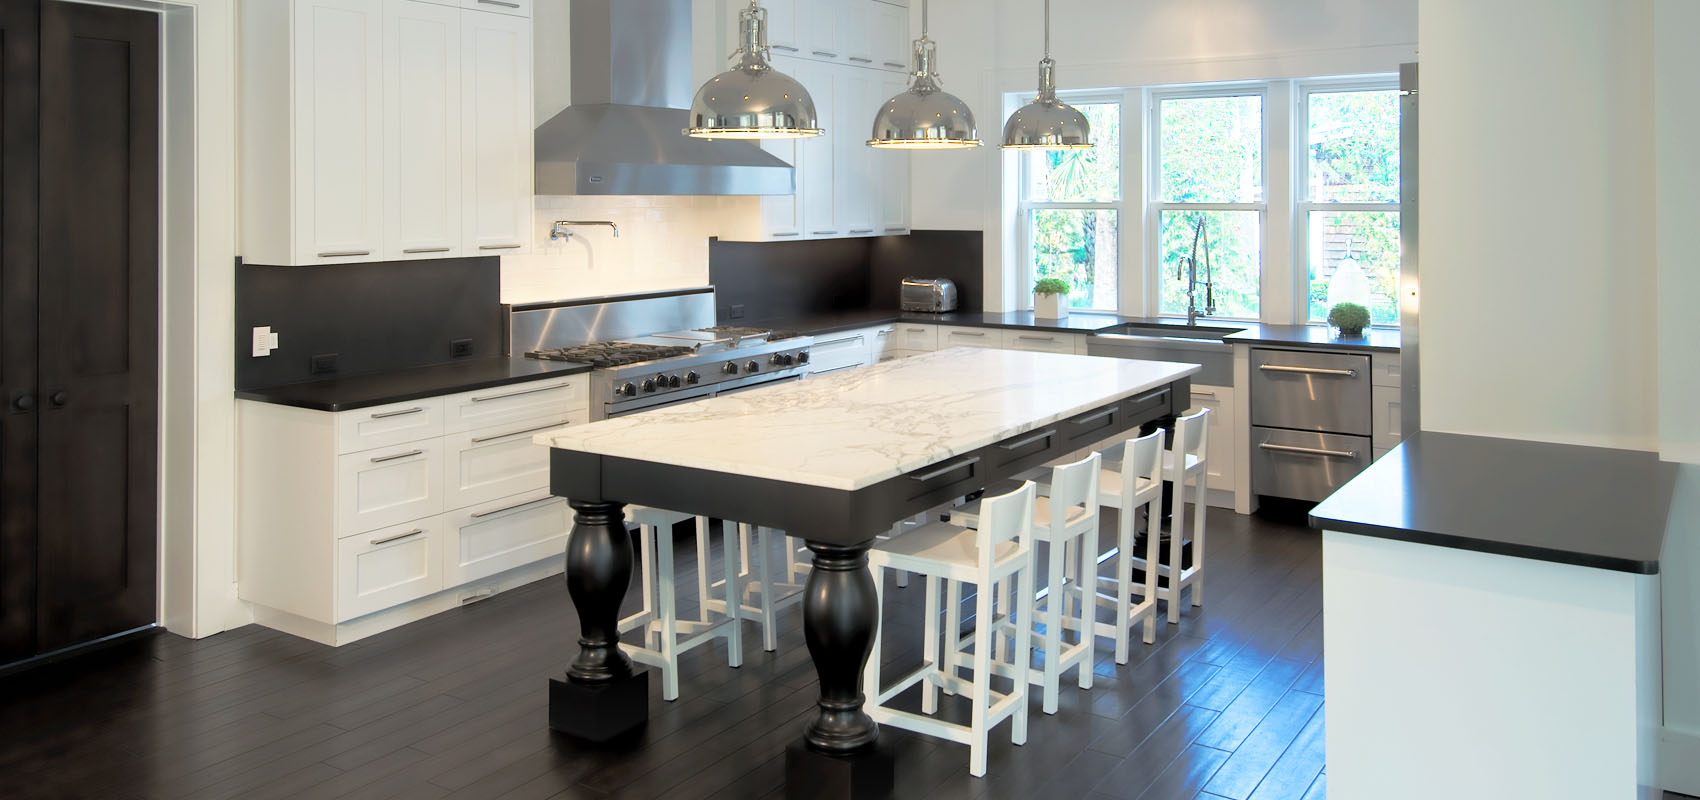 Custom Modern Kitchen Cabinets by River City Custom Cabinetry